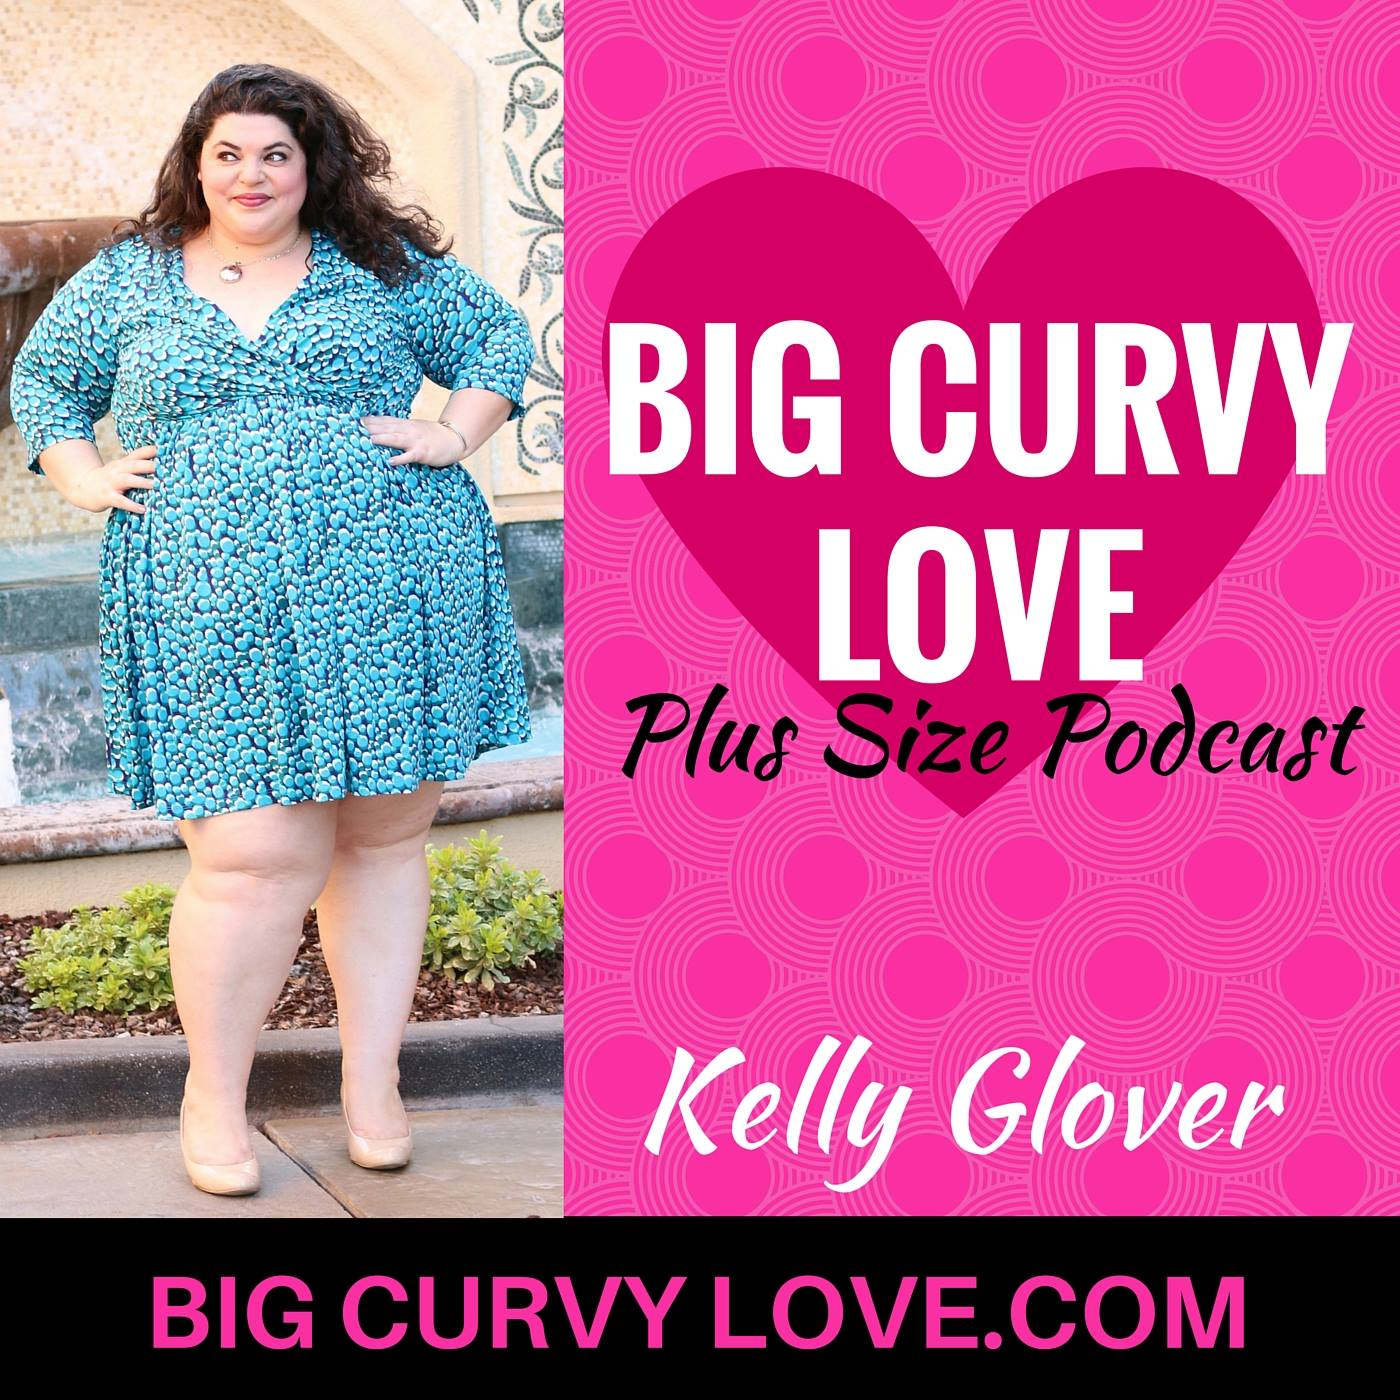 5 Plus Size and Fat Positive Podcasts